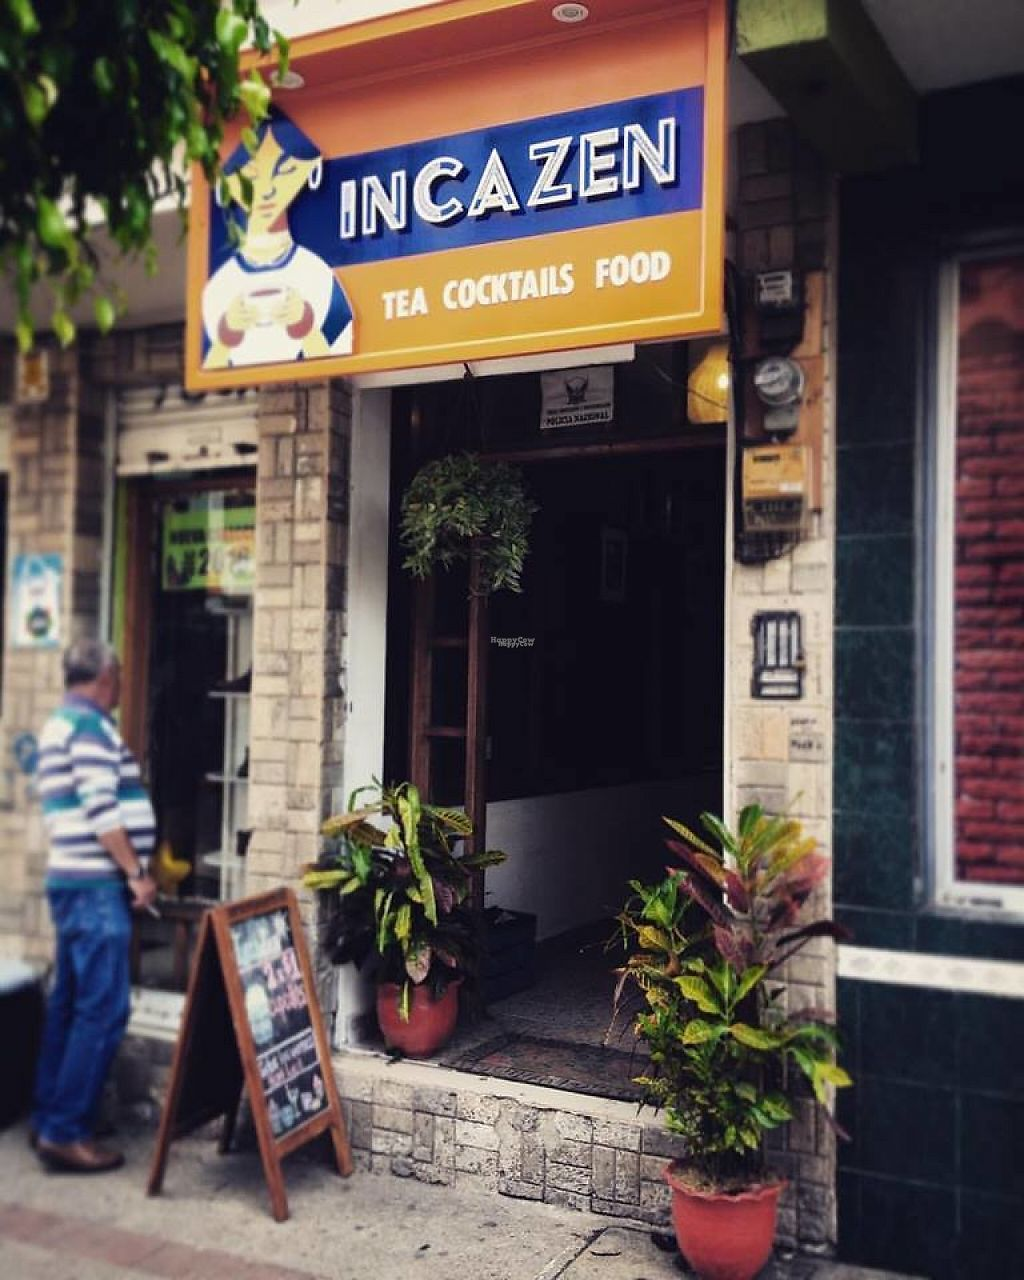 """Photo of IncaZen Tea House  by <a href=""""/members/profile/community"""">community</a> <br/>IncaZen Tea House <br/> April 3, 2017  - <a href='/contact/abuse/image/89670/244414'>Report</a>"""